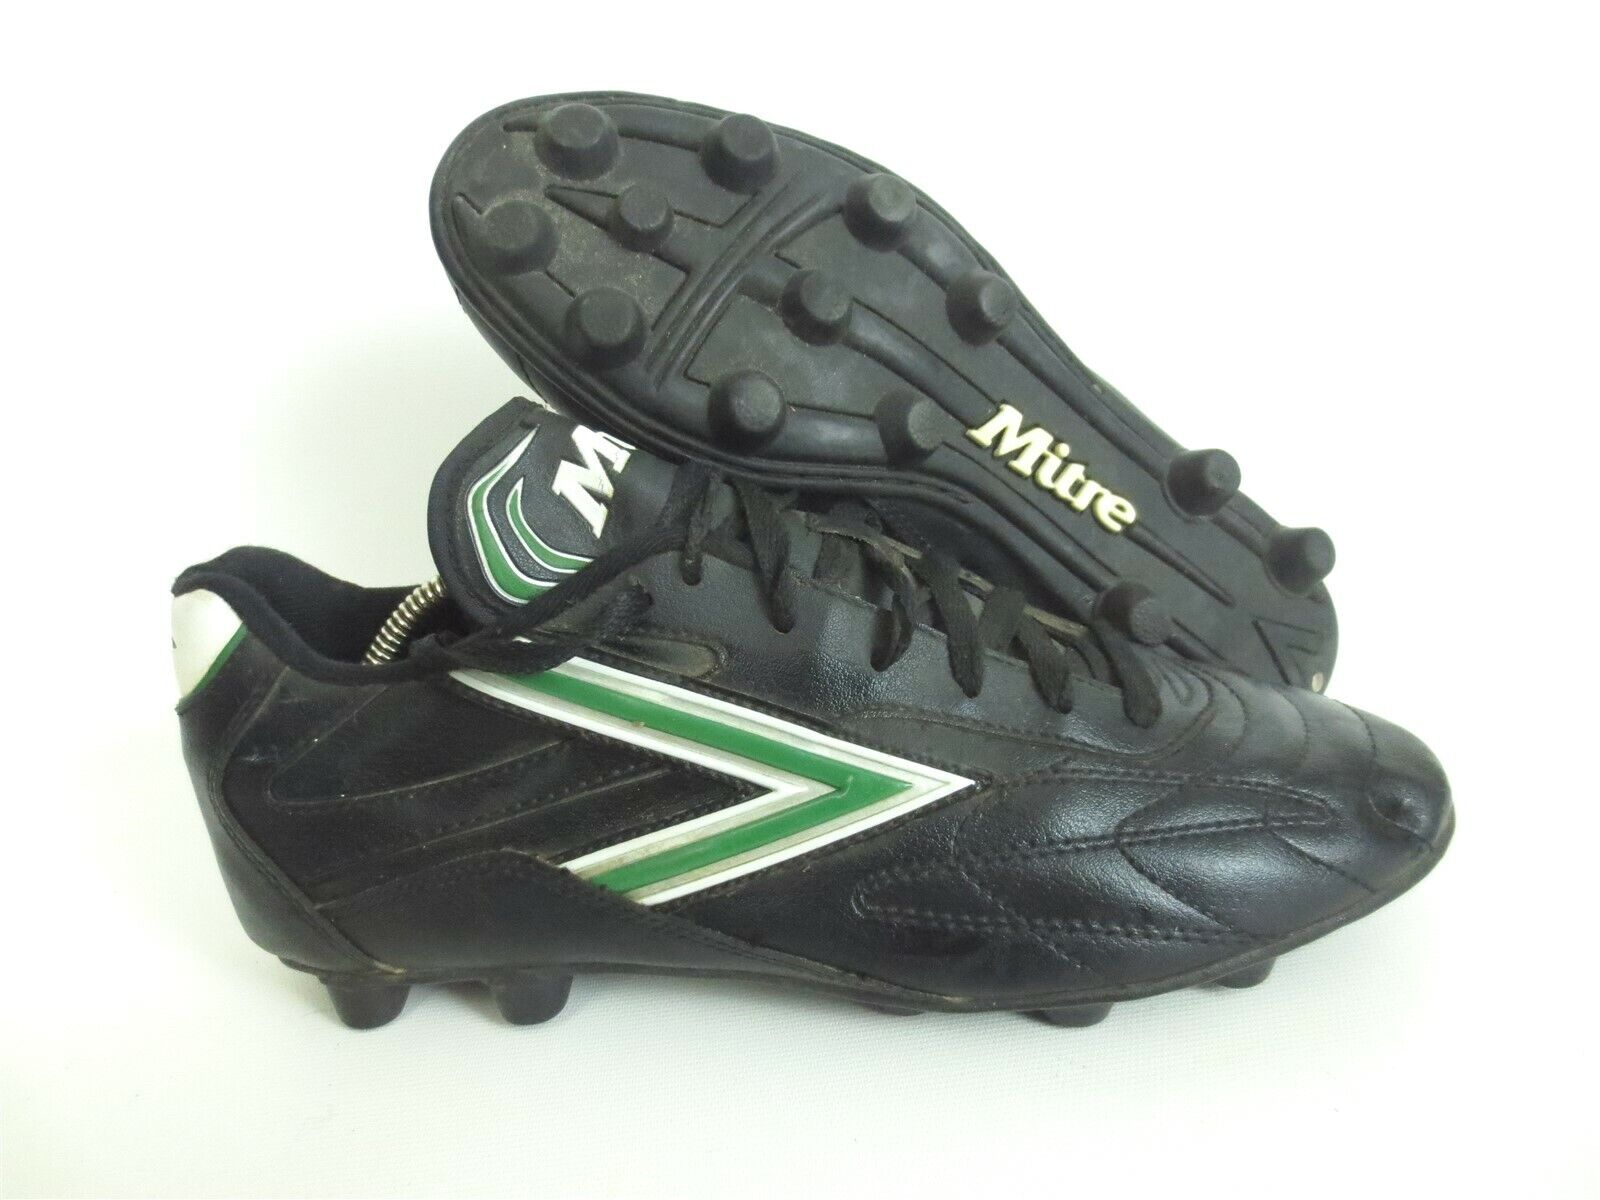 VTG MITRE 1980s Leather Soccer Shoes Cleats Black/Green Size